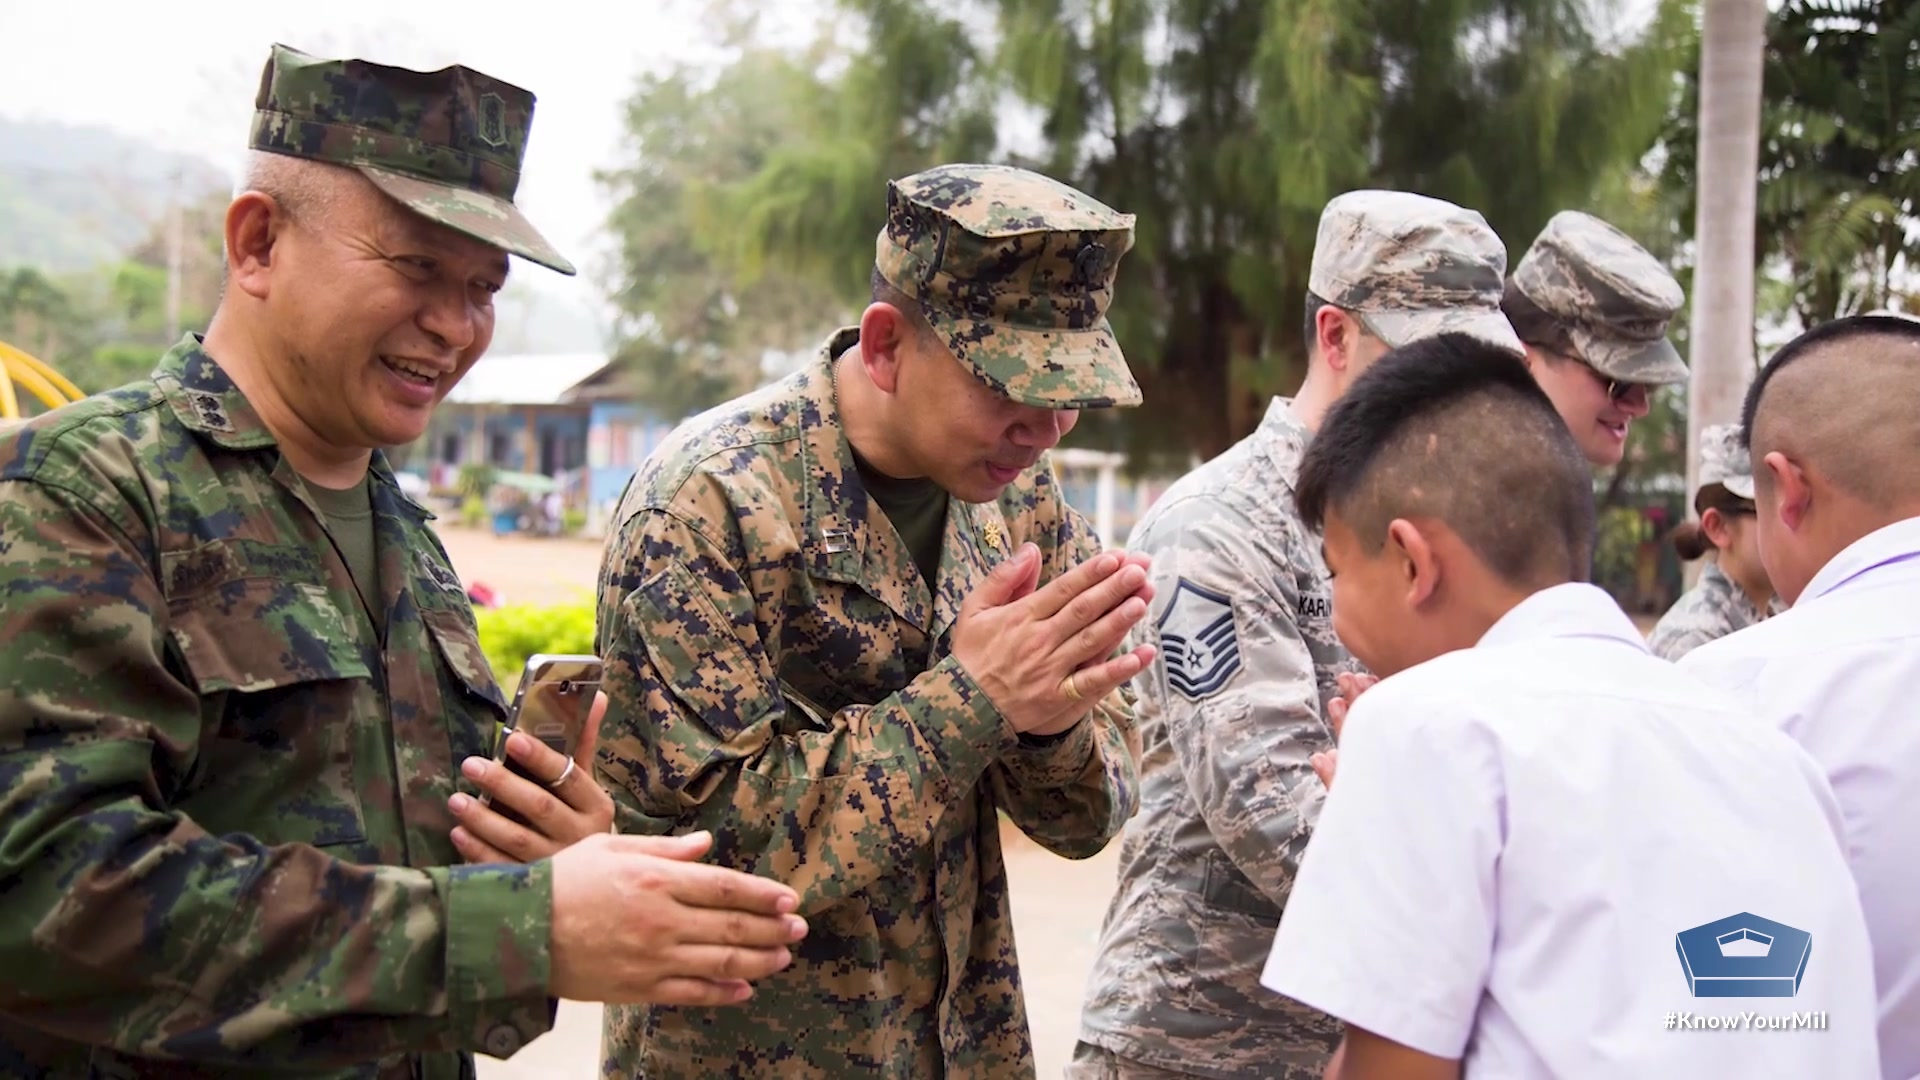 A former Buddhist monk reflects on Buddhism, becoming a Navy chaplain, and how his experiences guide the spiritual leadership he provides to sailors across the United States Navy.   Video by Army Specialist Christian Brailey